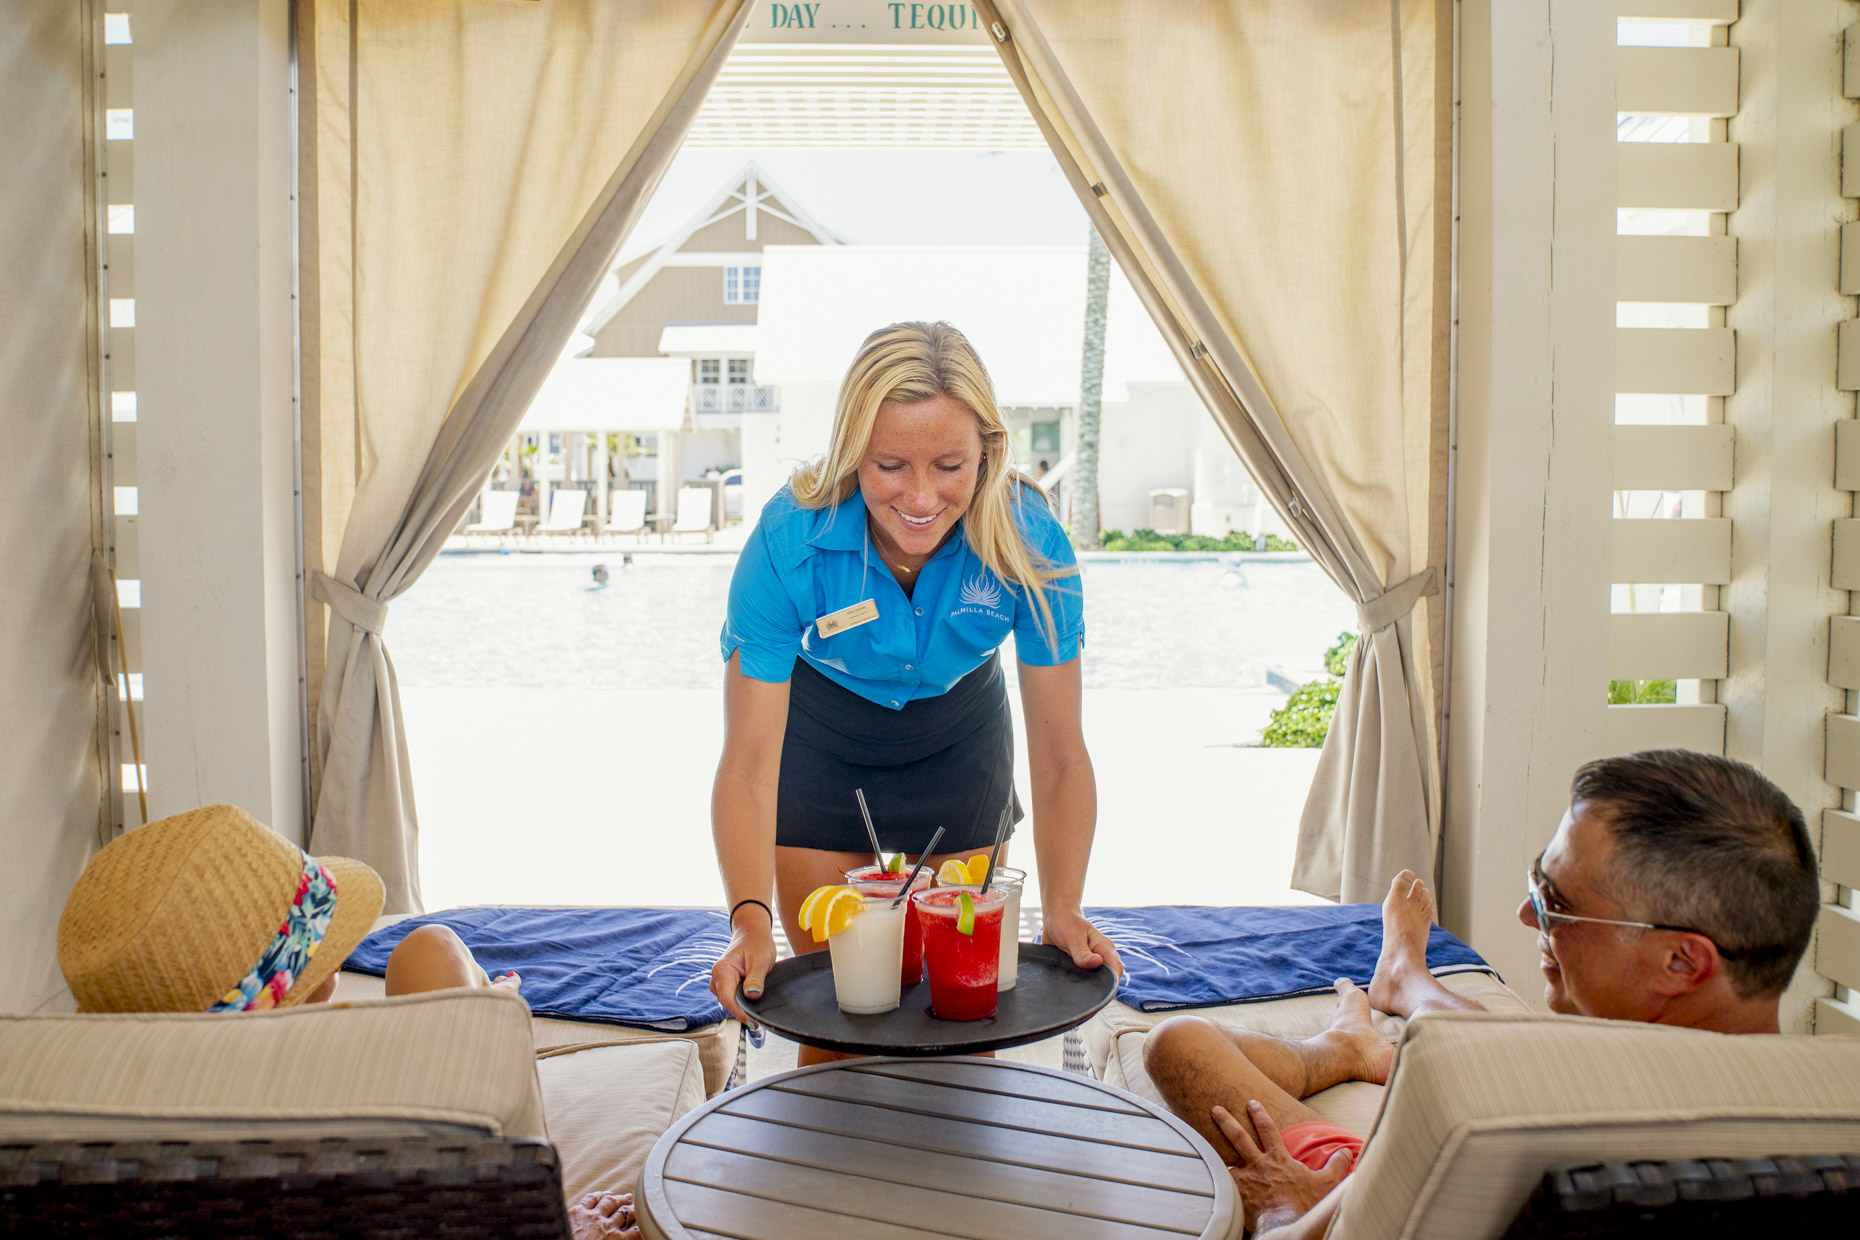 Woman delivering drinks to guests in private pool cabana